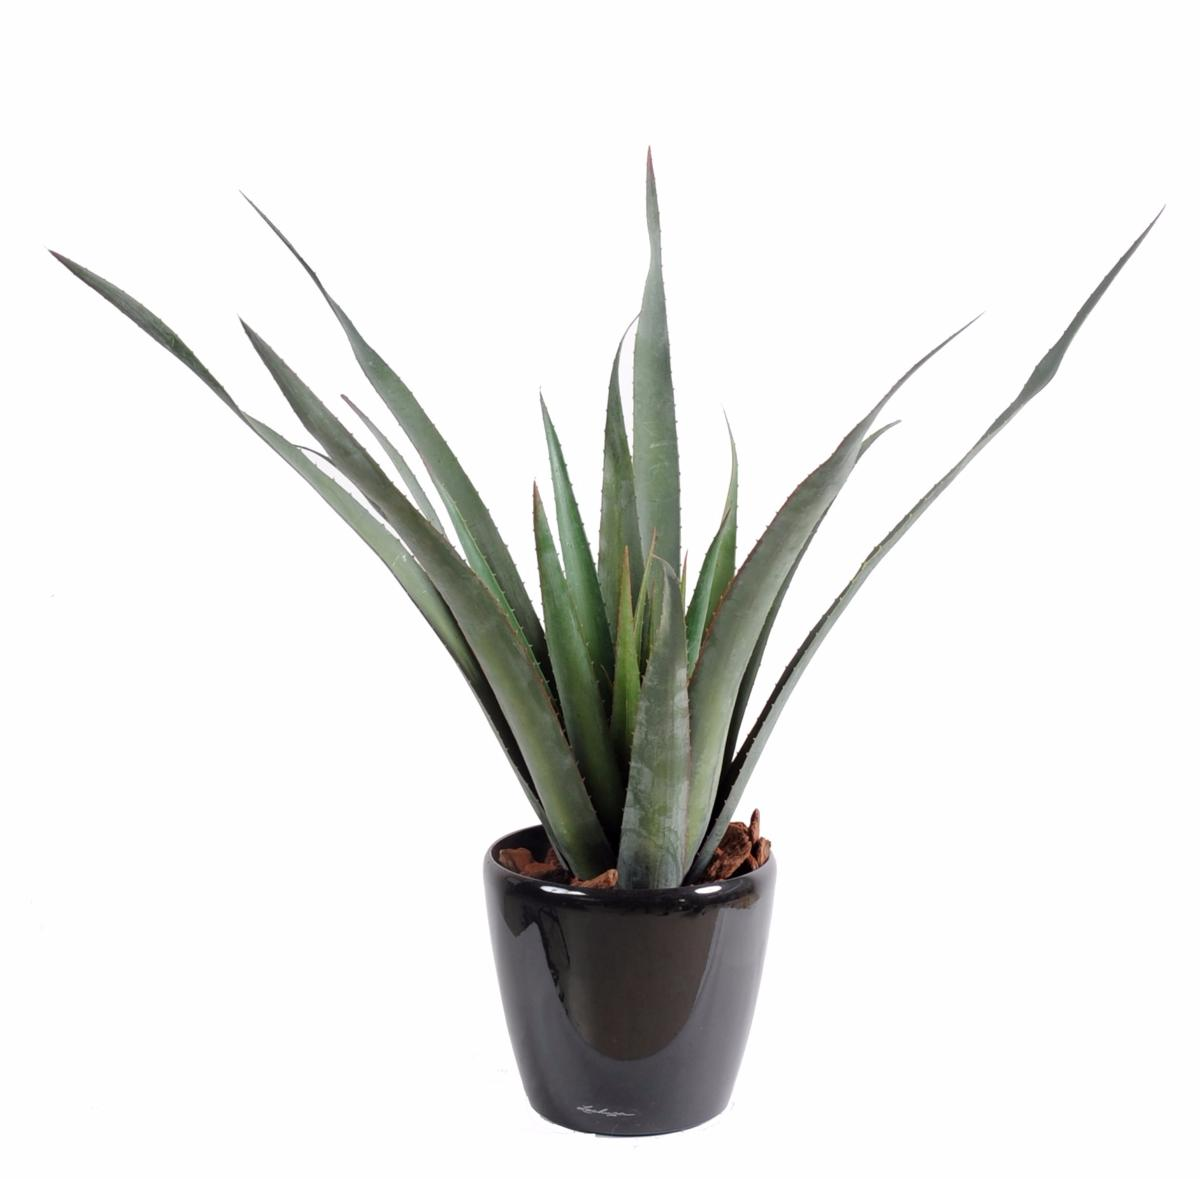 Plante artificielle aloe ferox en pot cactus artificiel for Plante fleurie exterieur ete